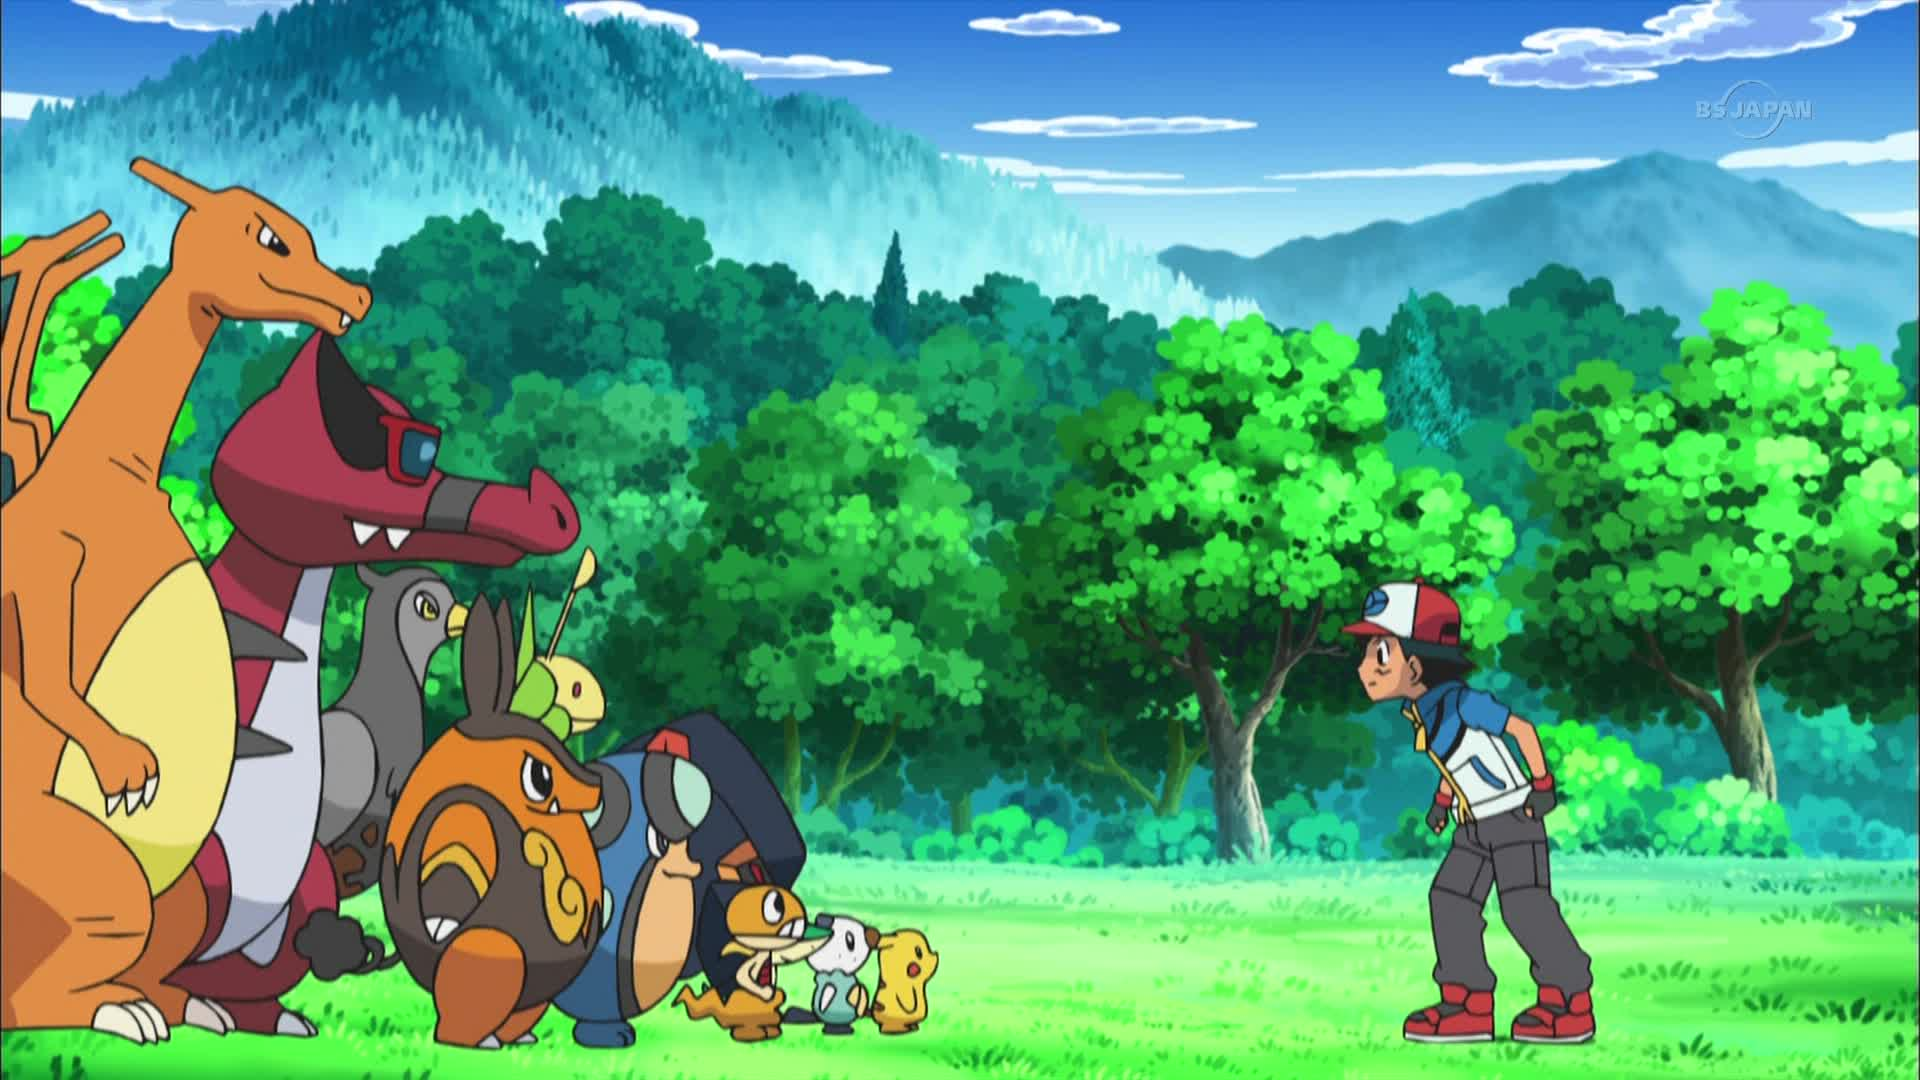 pokemon best wishes satoshi and butterfree until the day we meet again